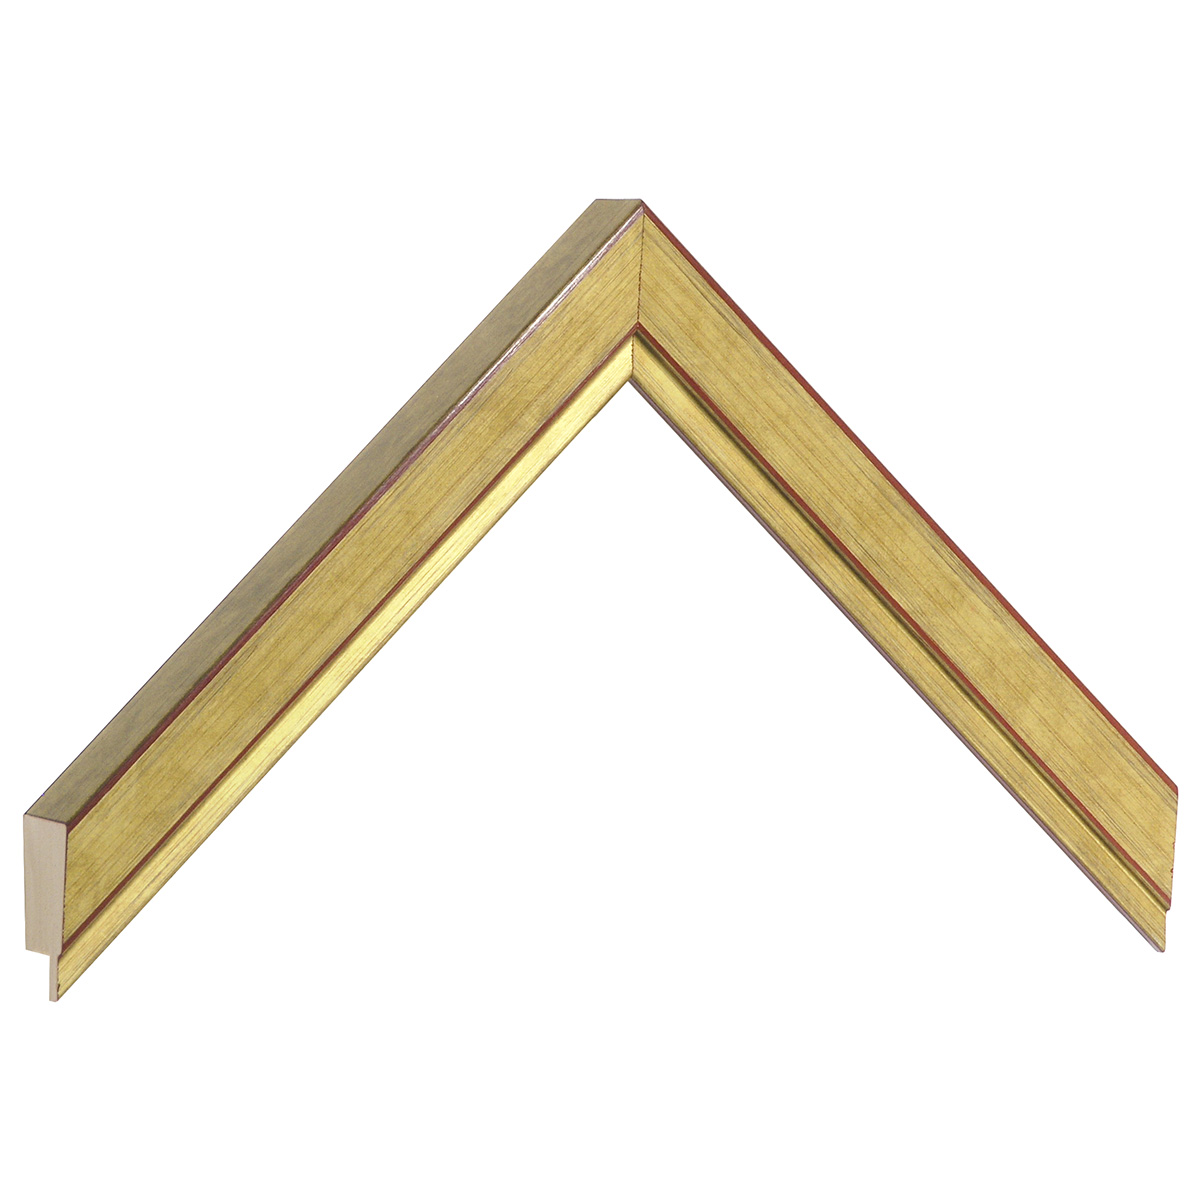 Moulding ayous, width 22mm height 22 - gold finish